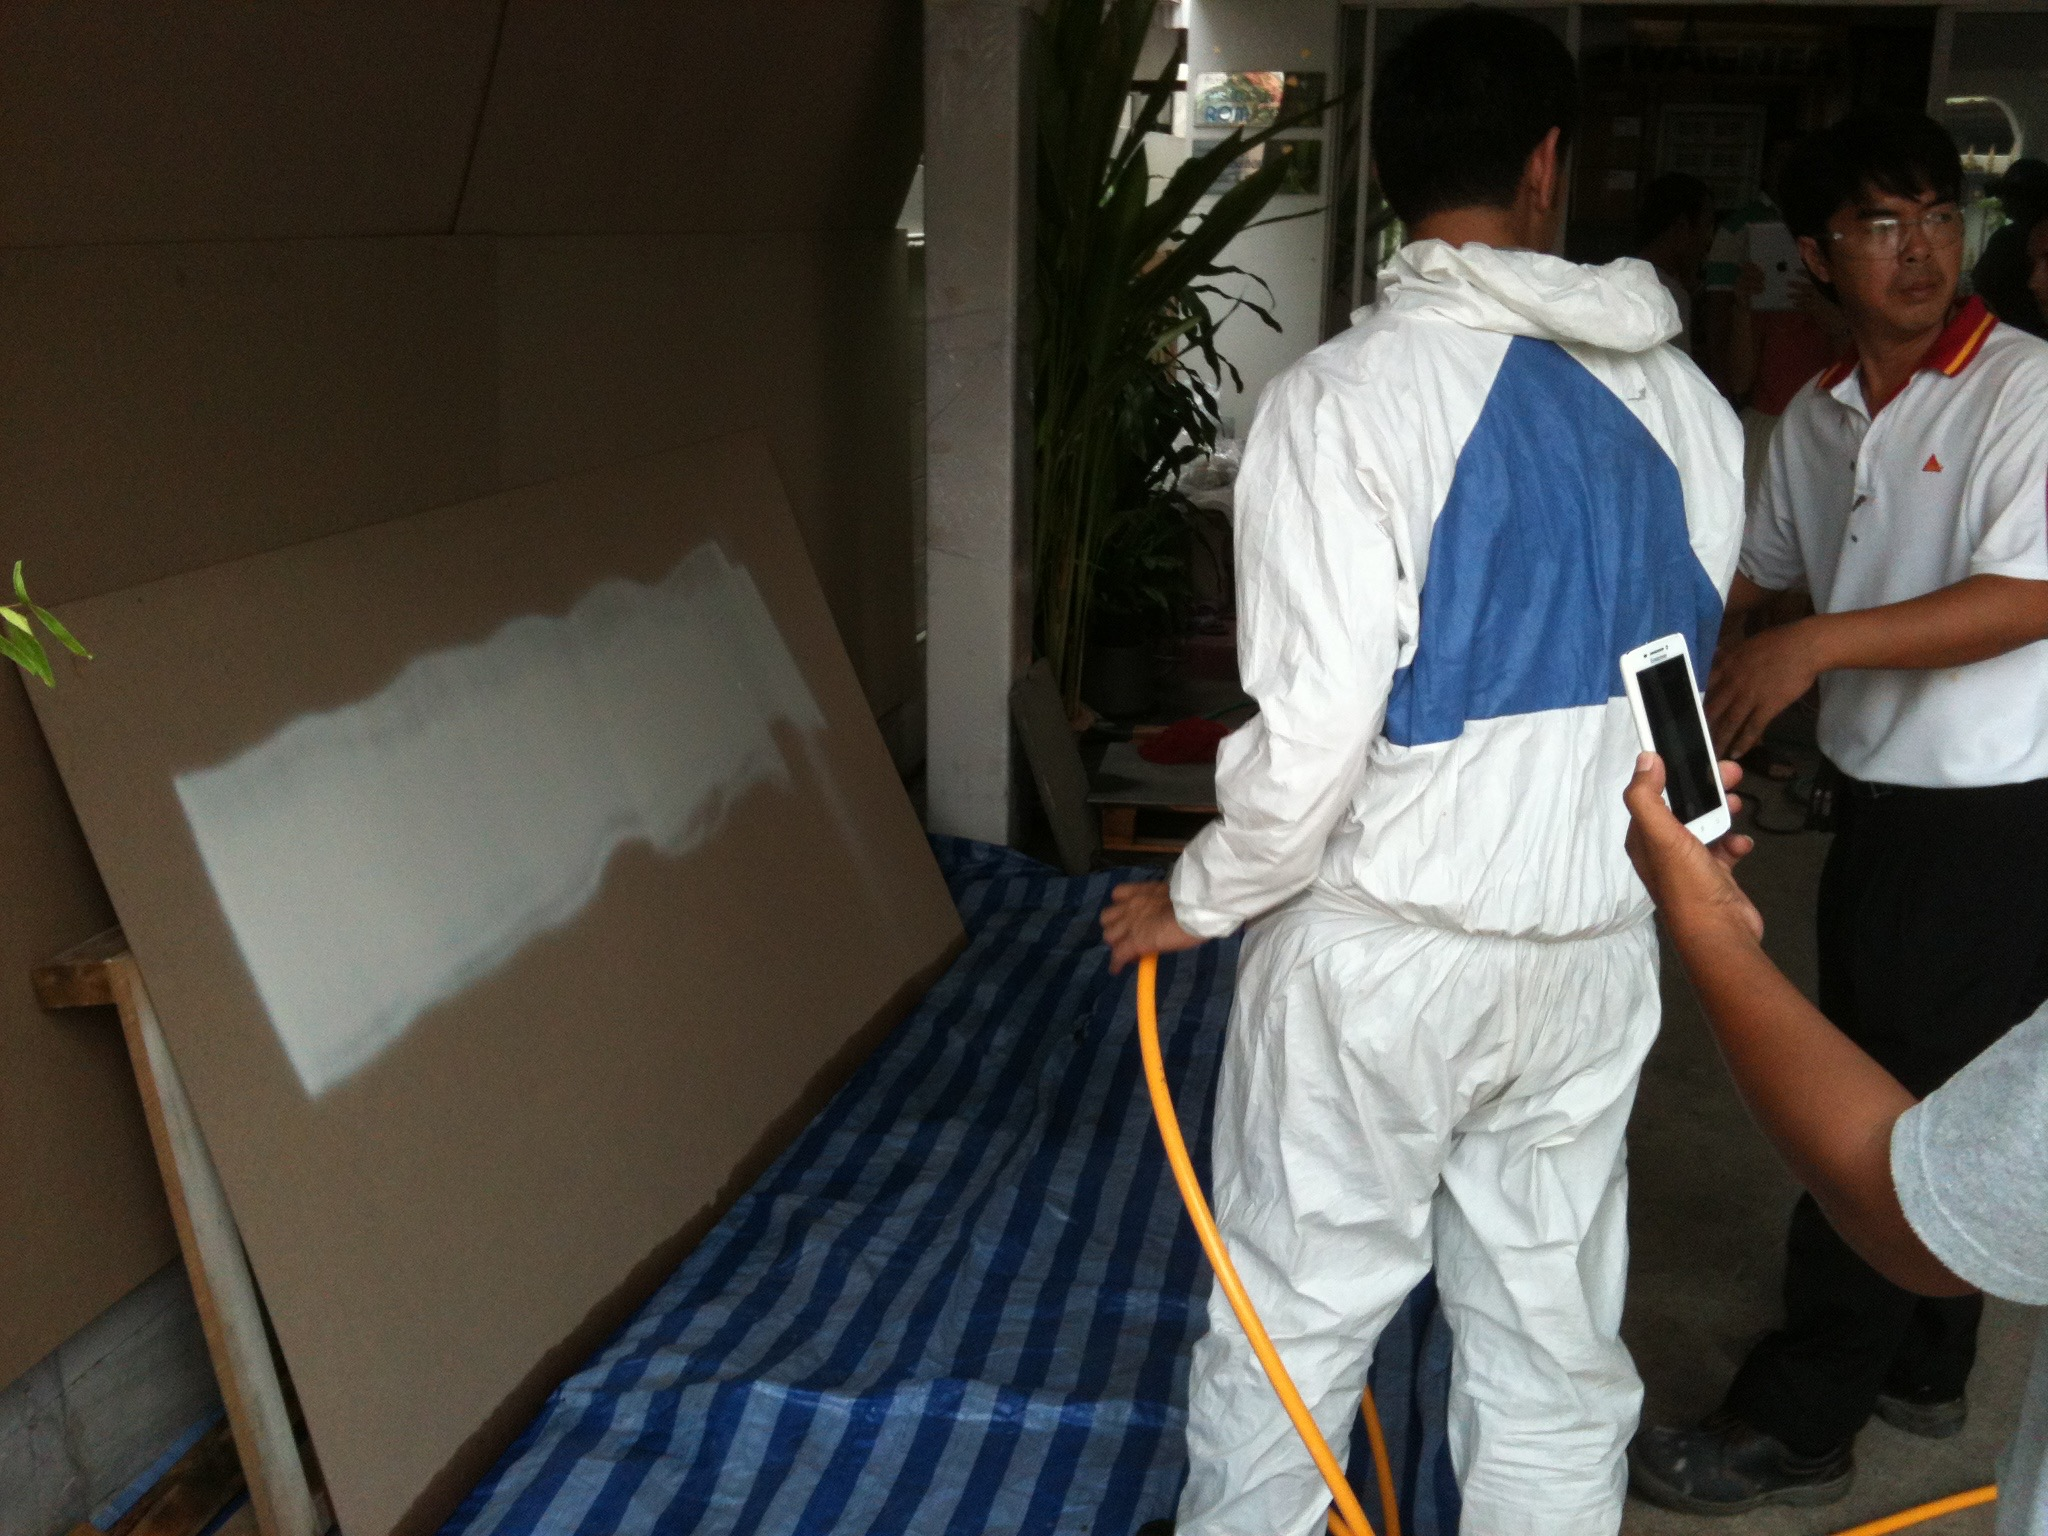 4. Testing by Painting